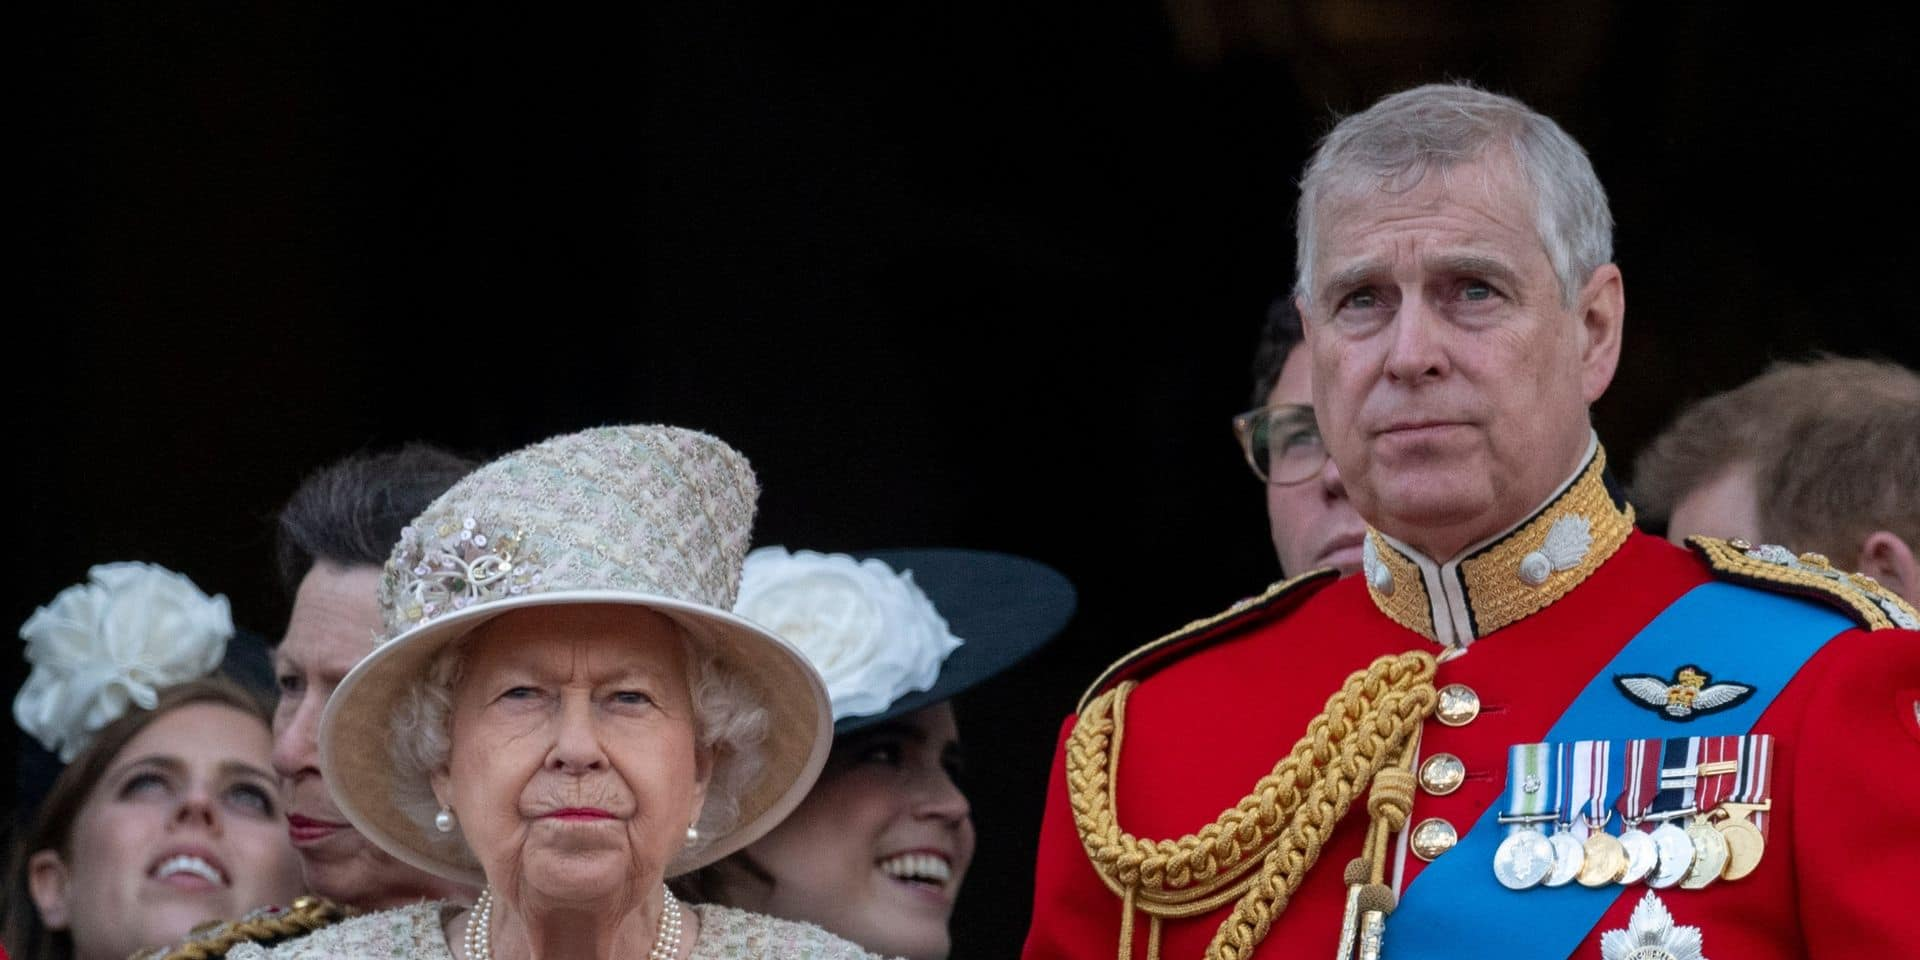 Le prince Andrew fait scandale à cause d'une technique de drague qui enfreint le protocole royal